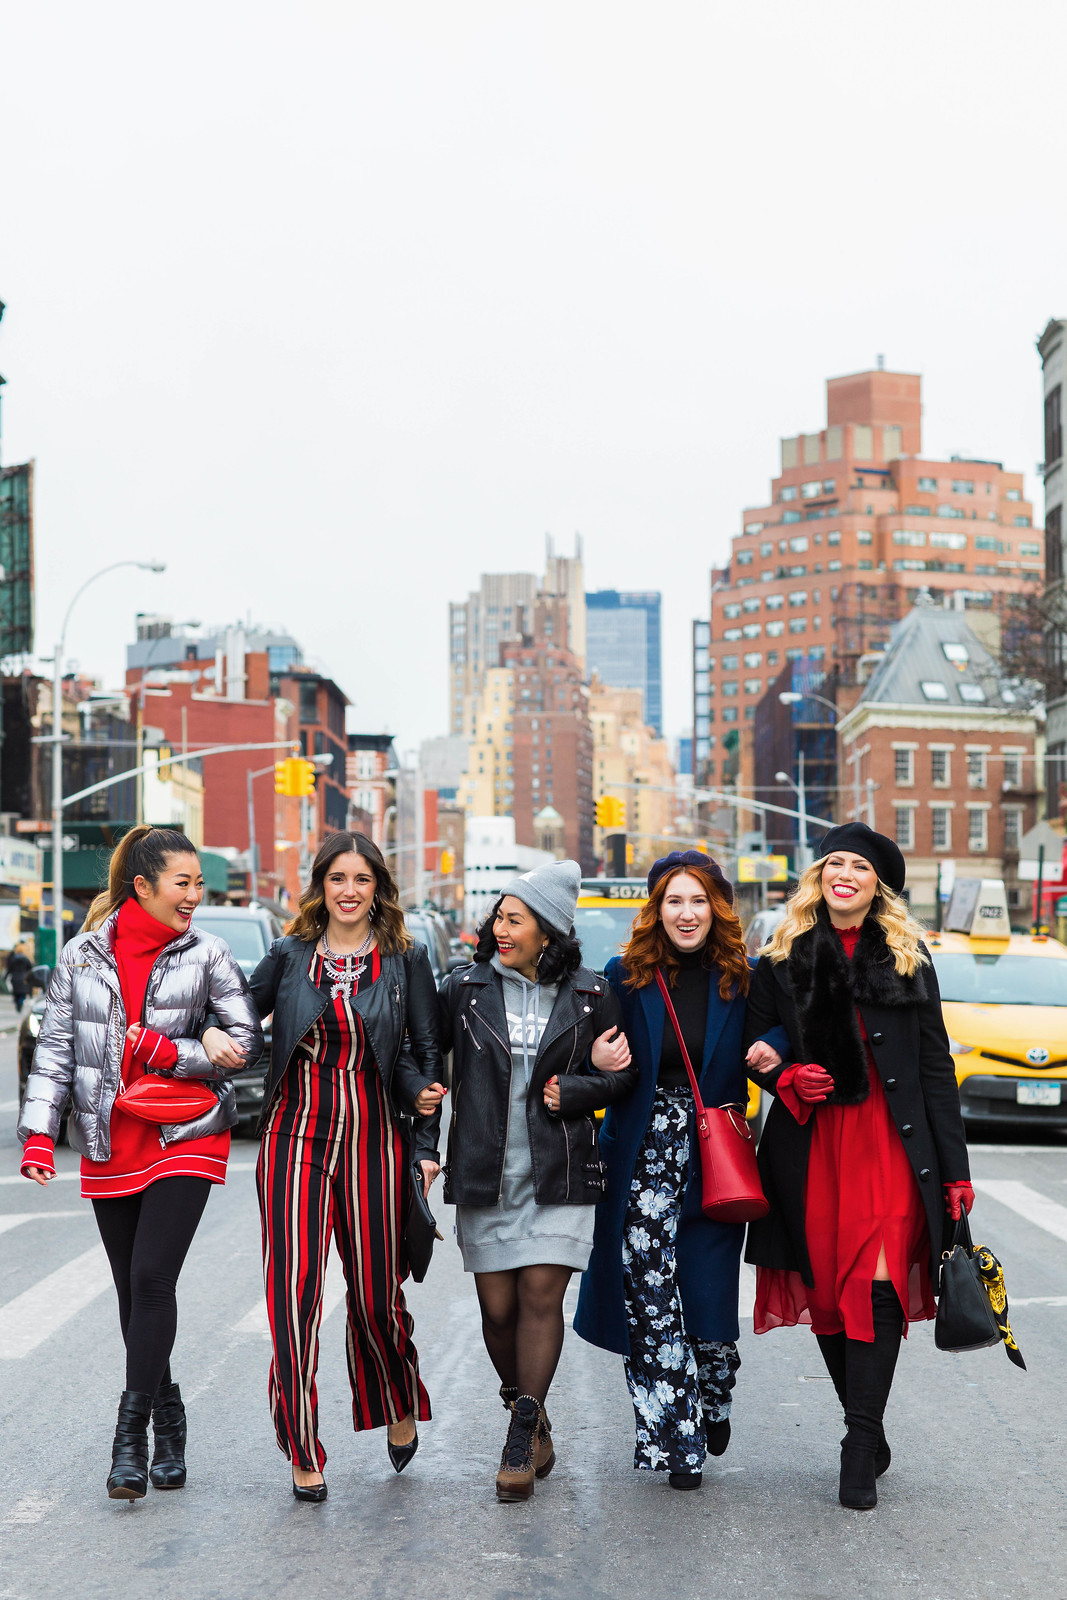 Fashion Blogger Besties NYC New York City Street Style Walking Intersection Fashion Outfits